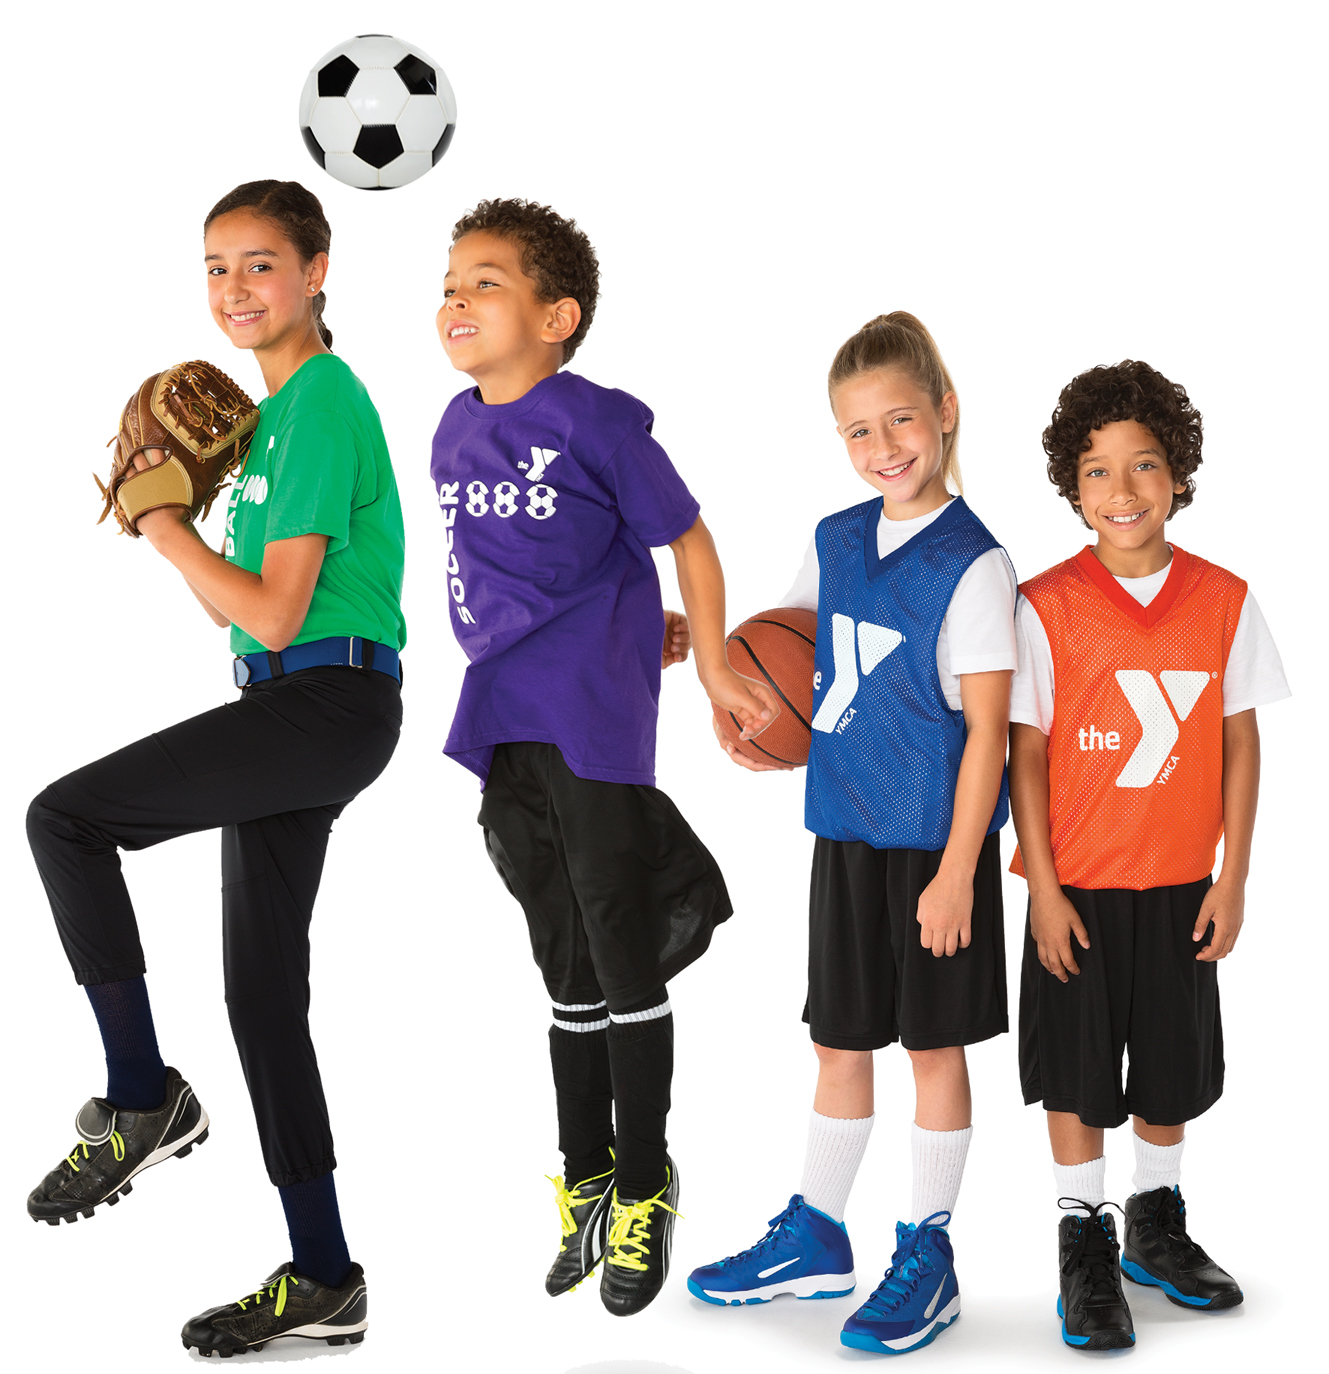 sports youth montage camps ymca foglia spring programs lake chicago zurich reply